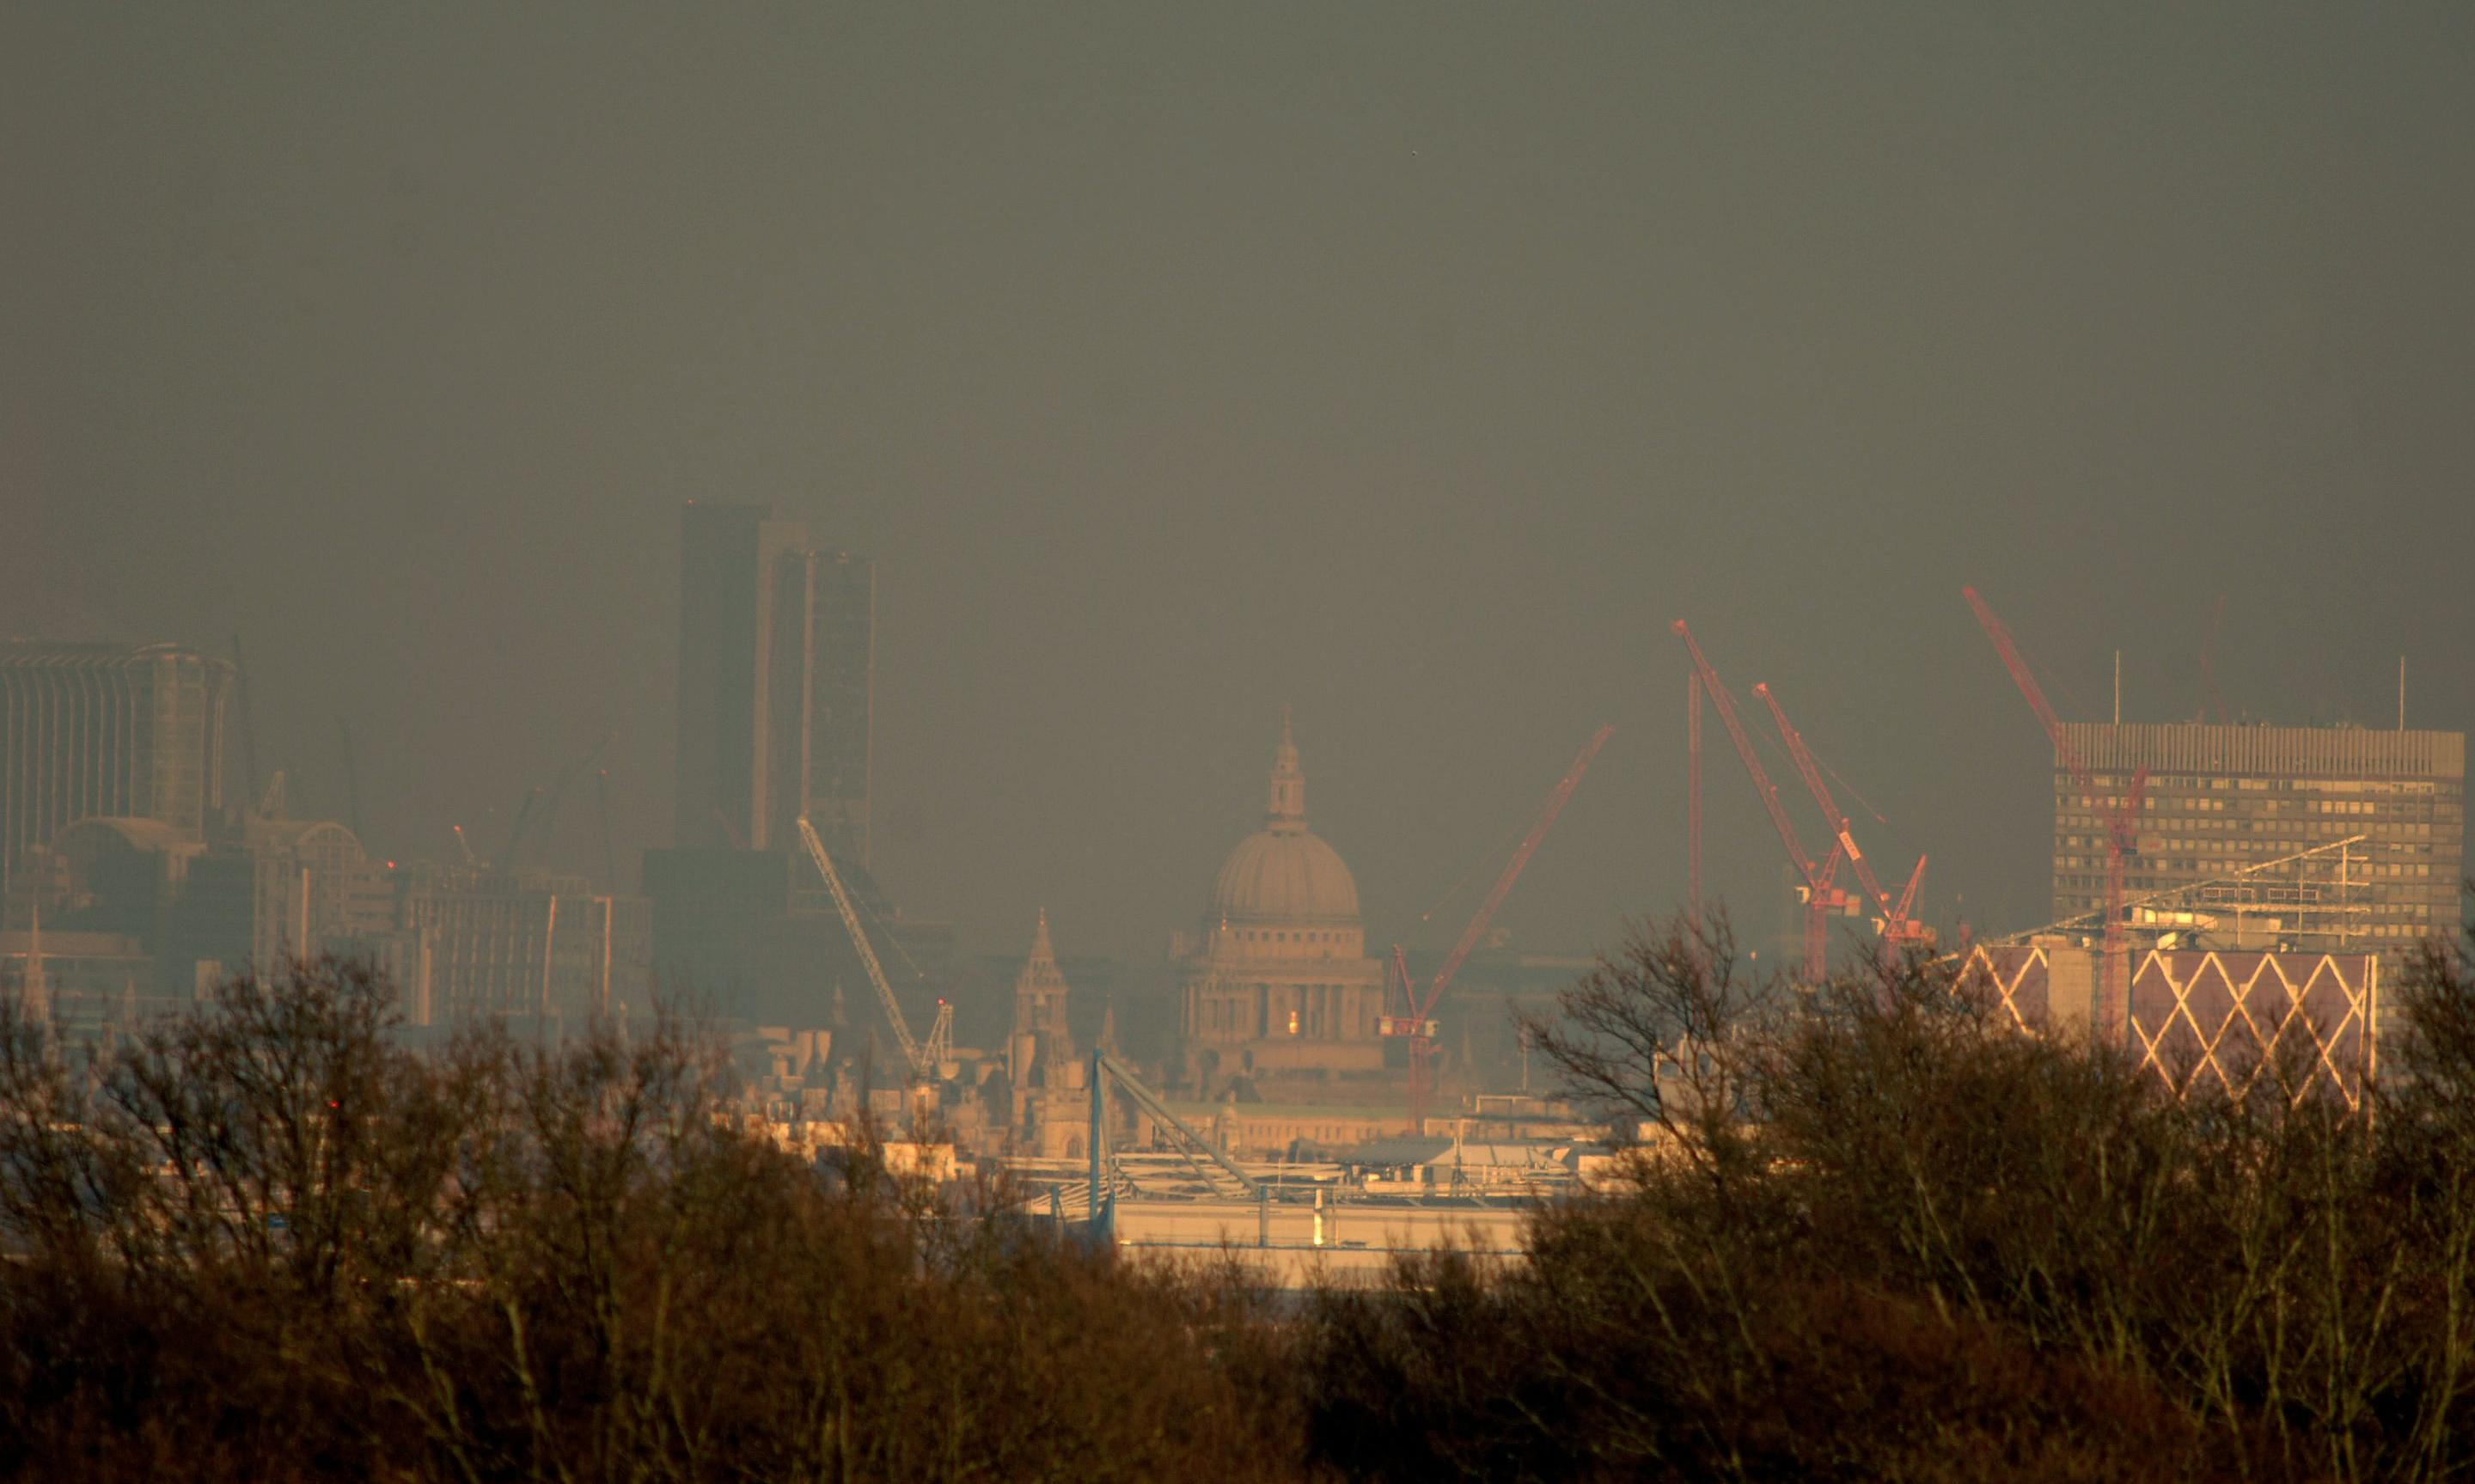 Action on air pollution works but far more is needed, study shows